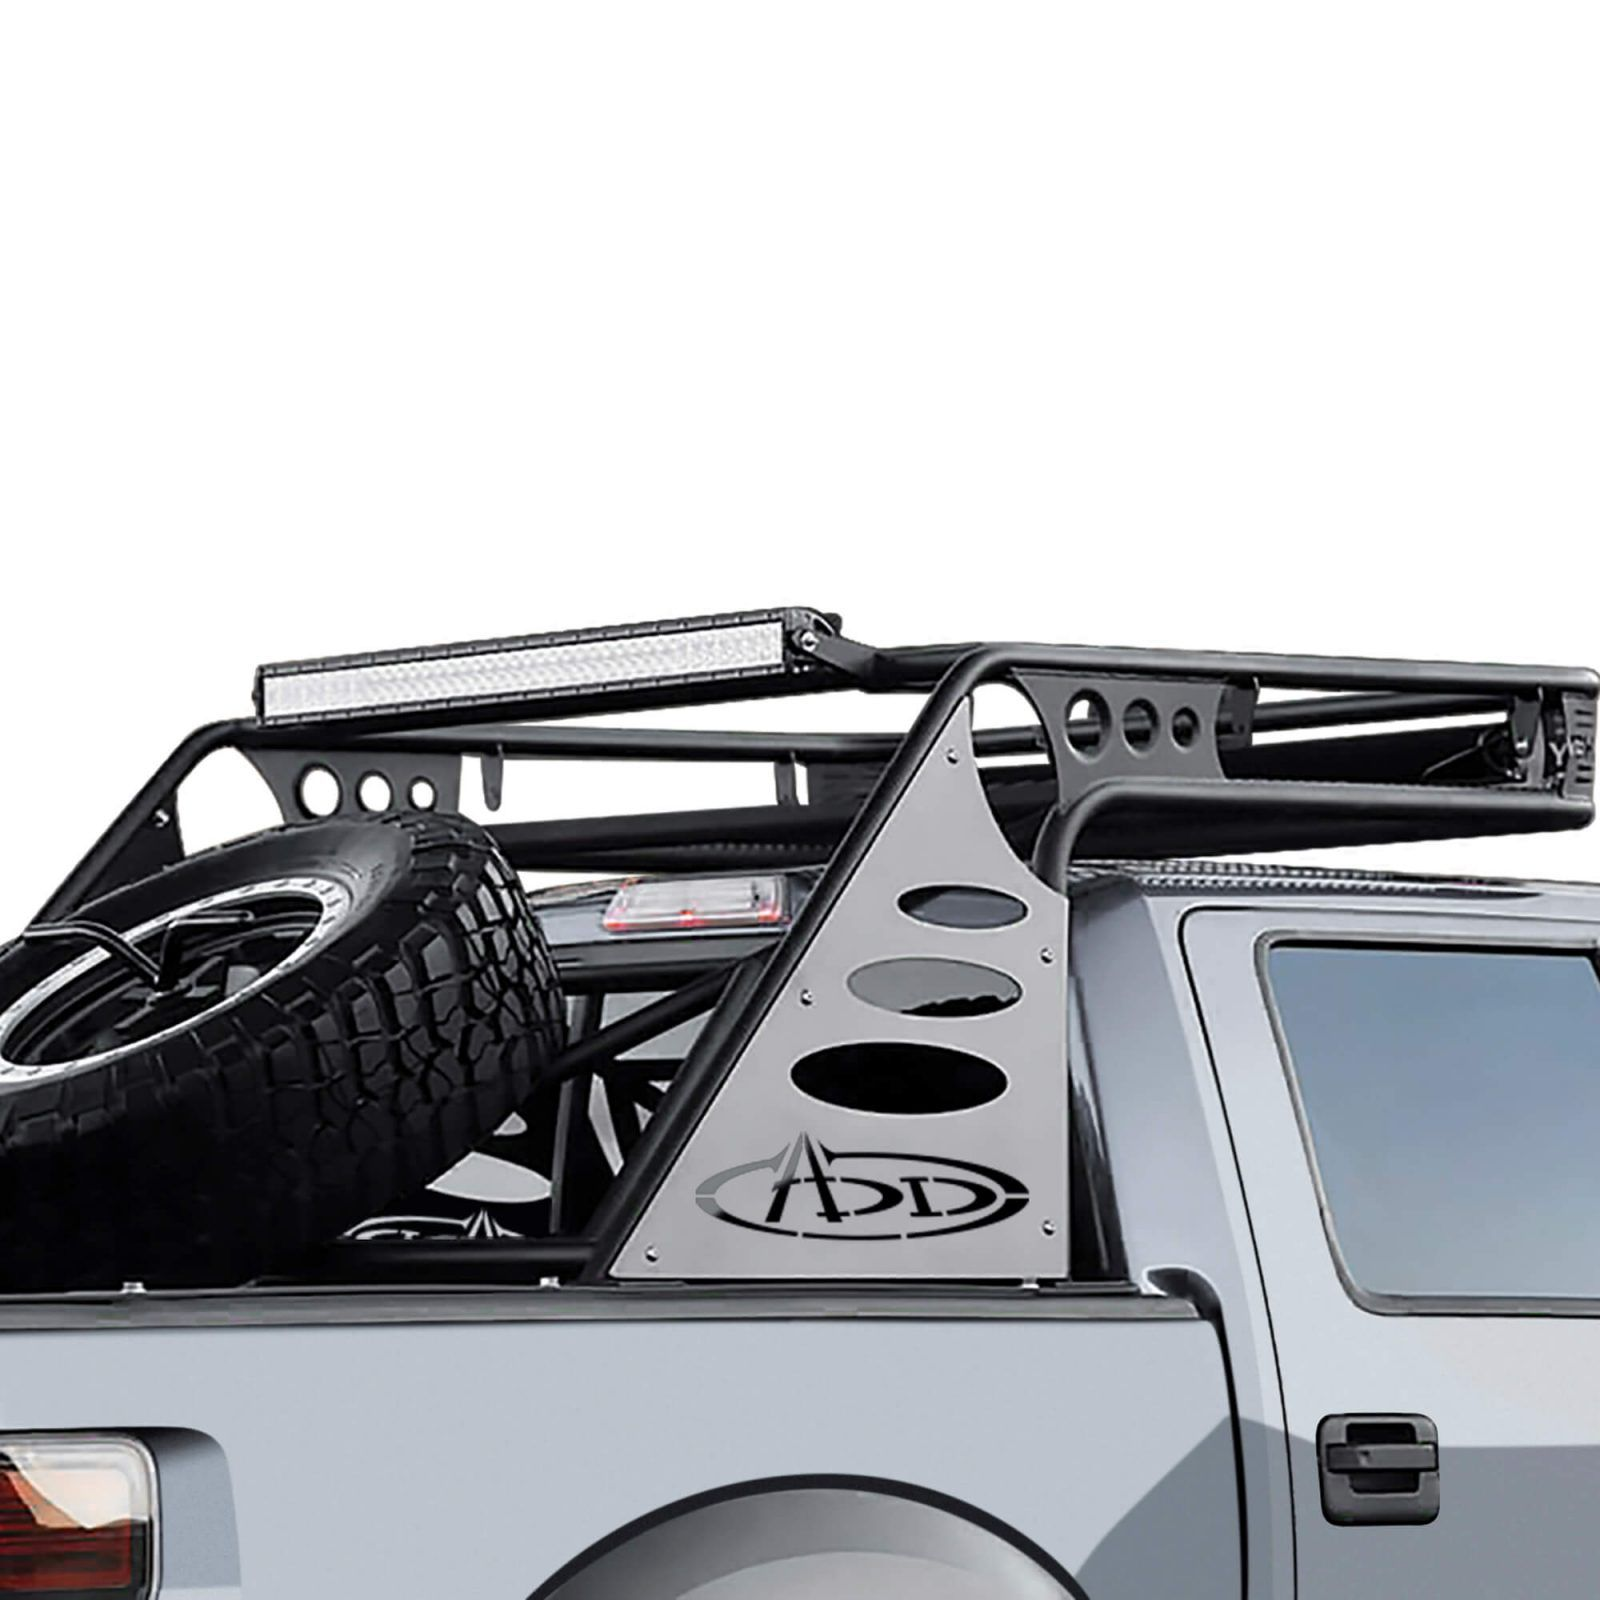 ADD Race Series R Chase Rack Truck accessories, Diesel